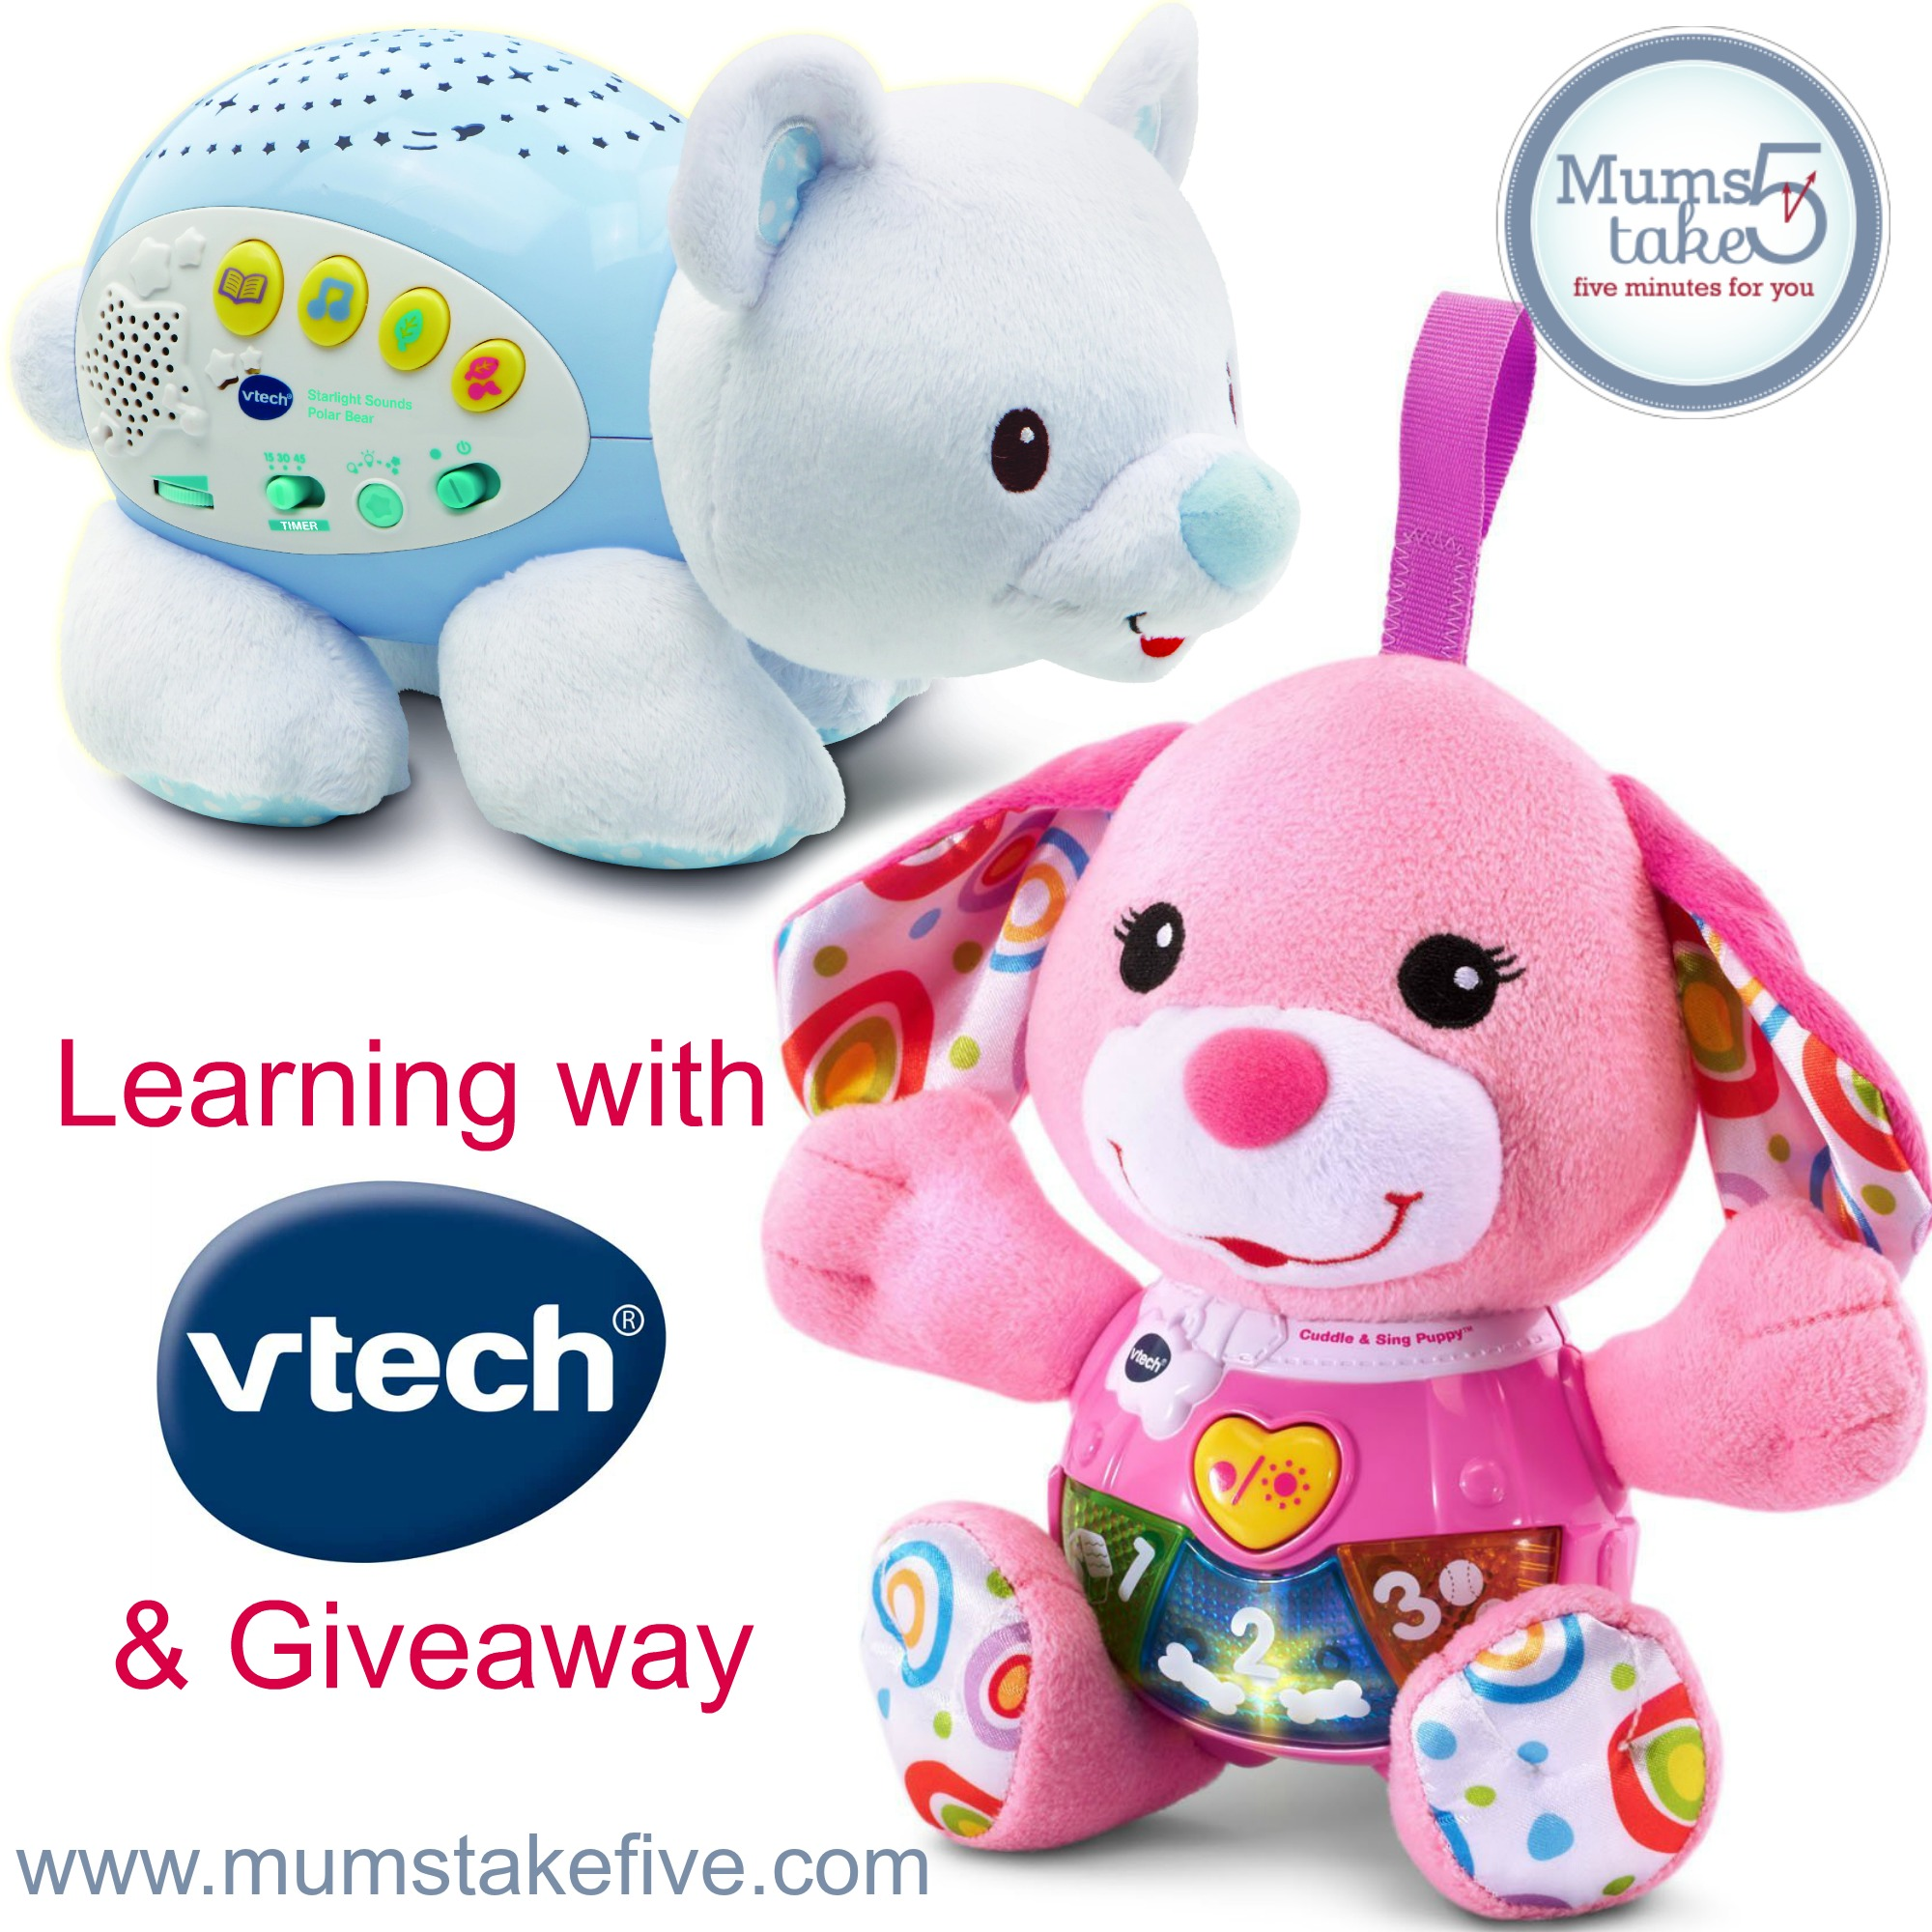 Vtech Baby Toy Giveaway